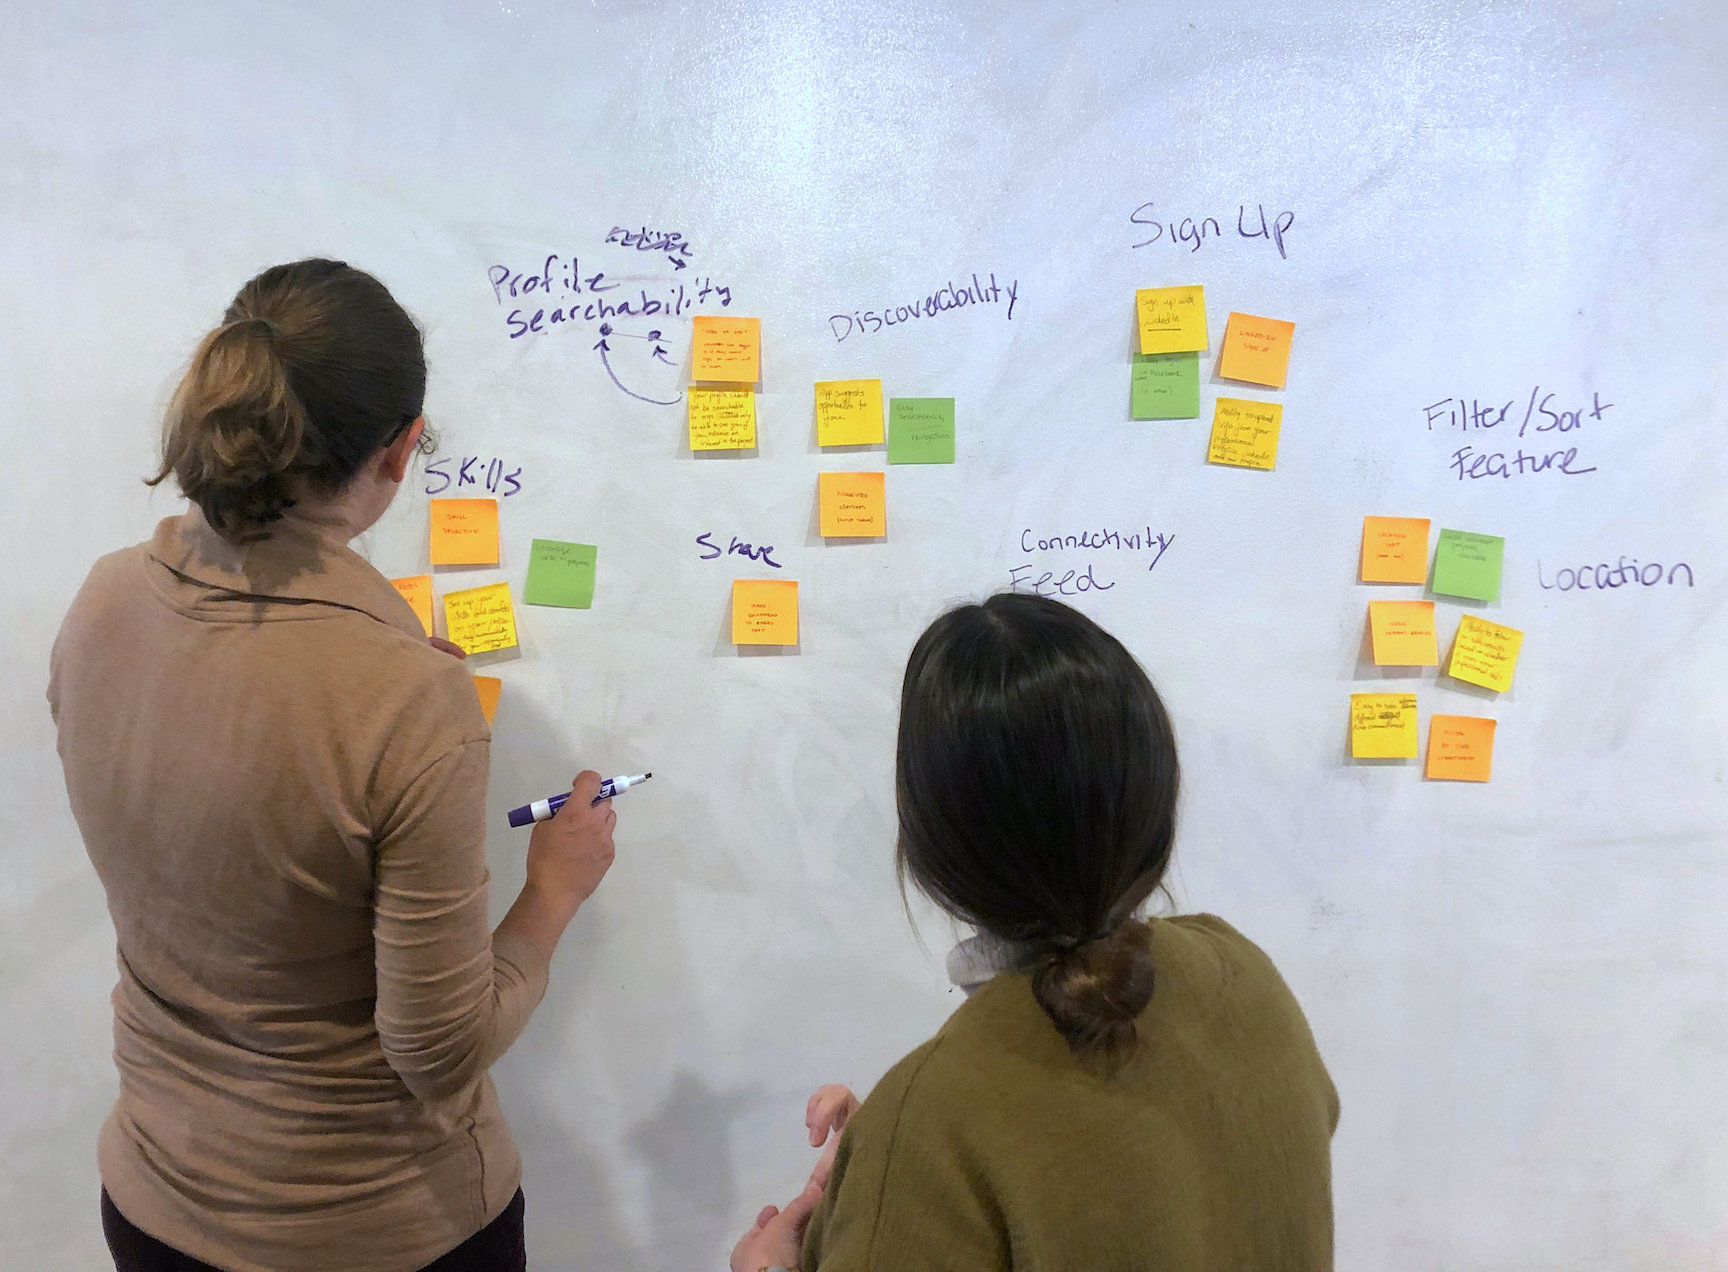 Image of women affinity mapping